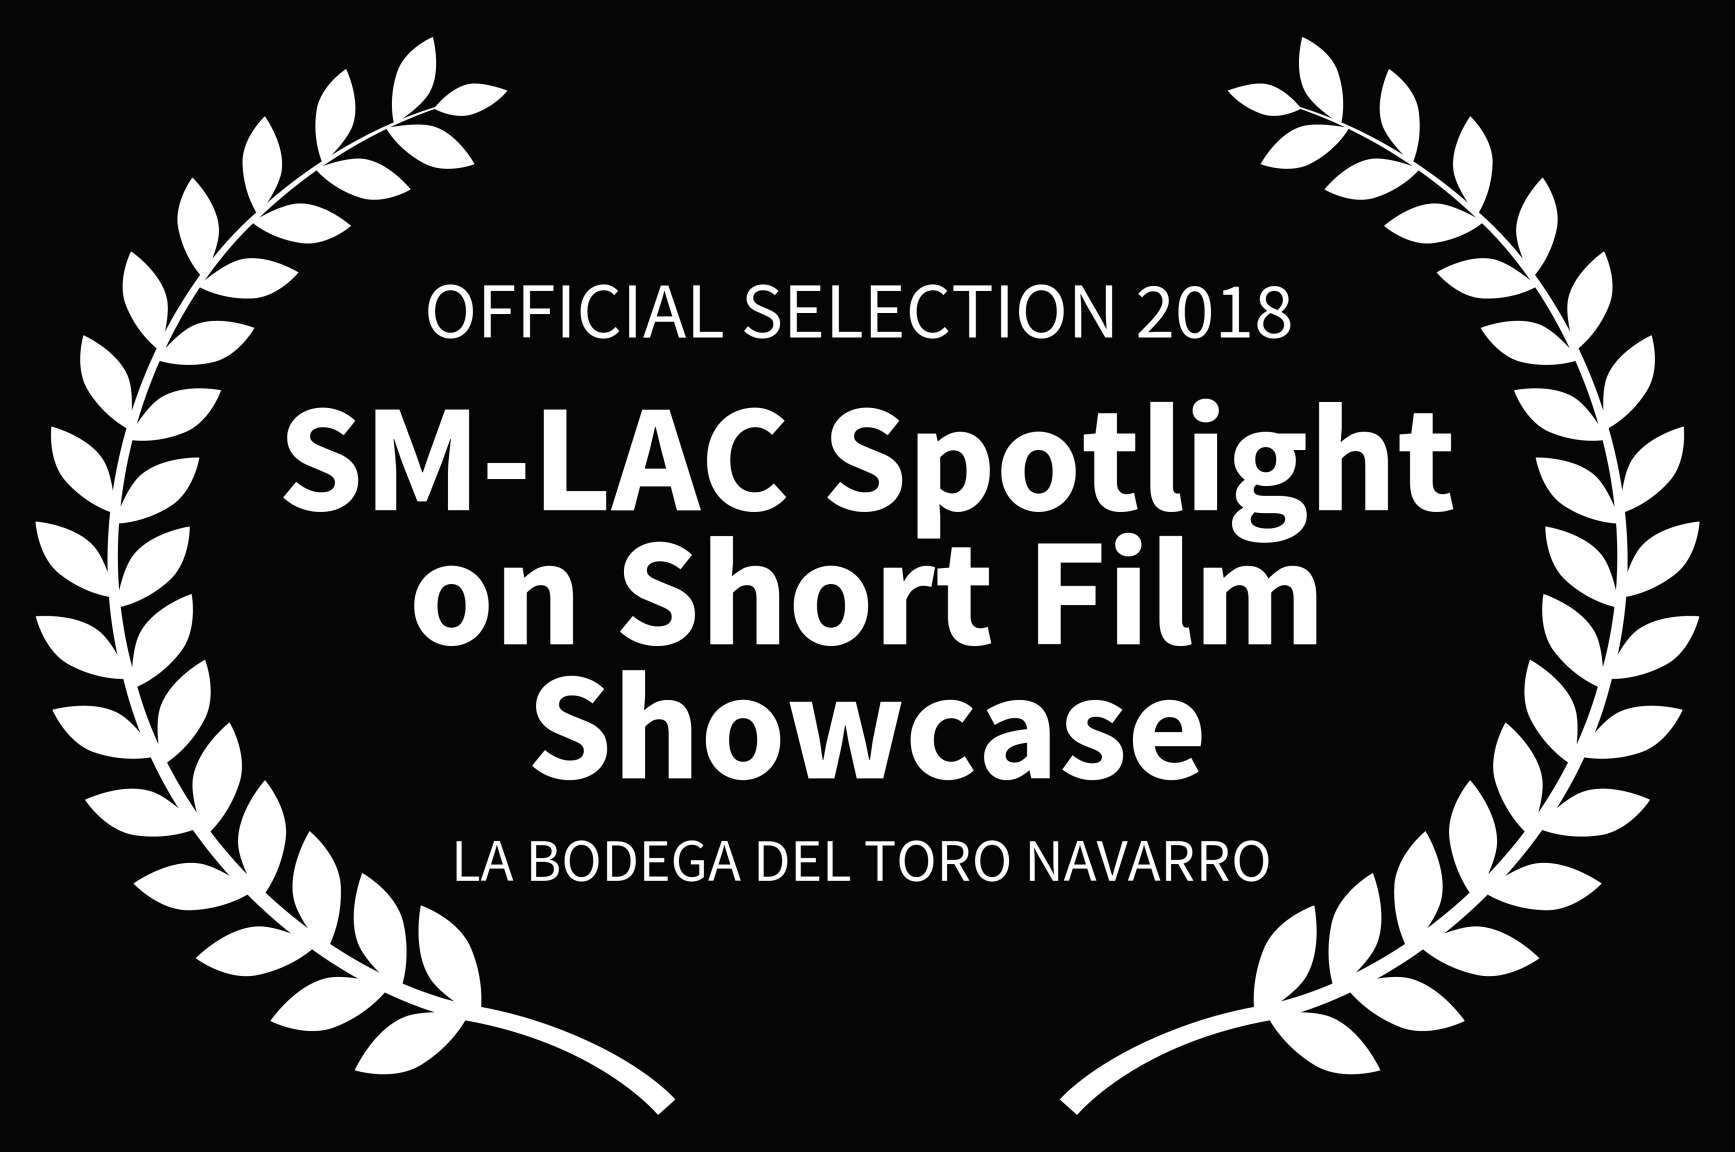 -LAC Spotlight on Short Film Showcase - LA BODEGA DEL TORO NAVARRO -2